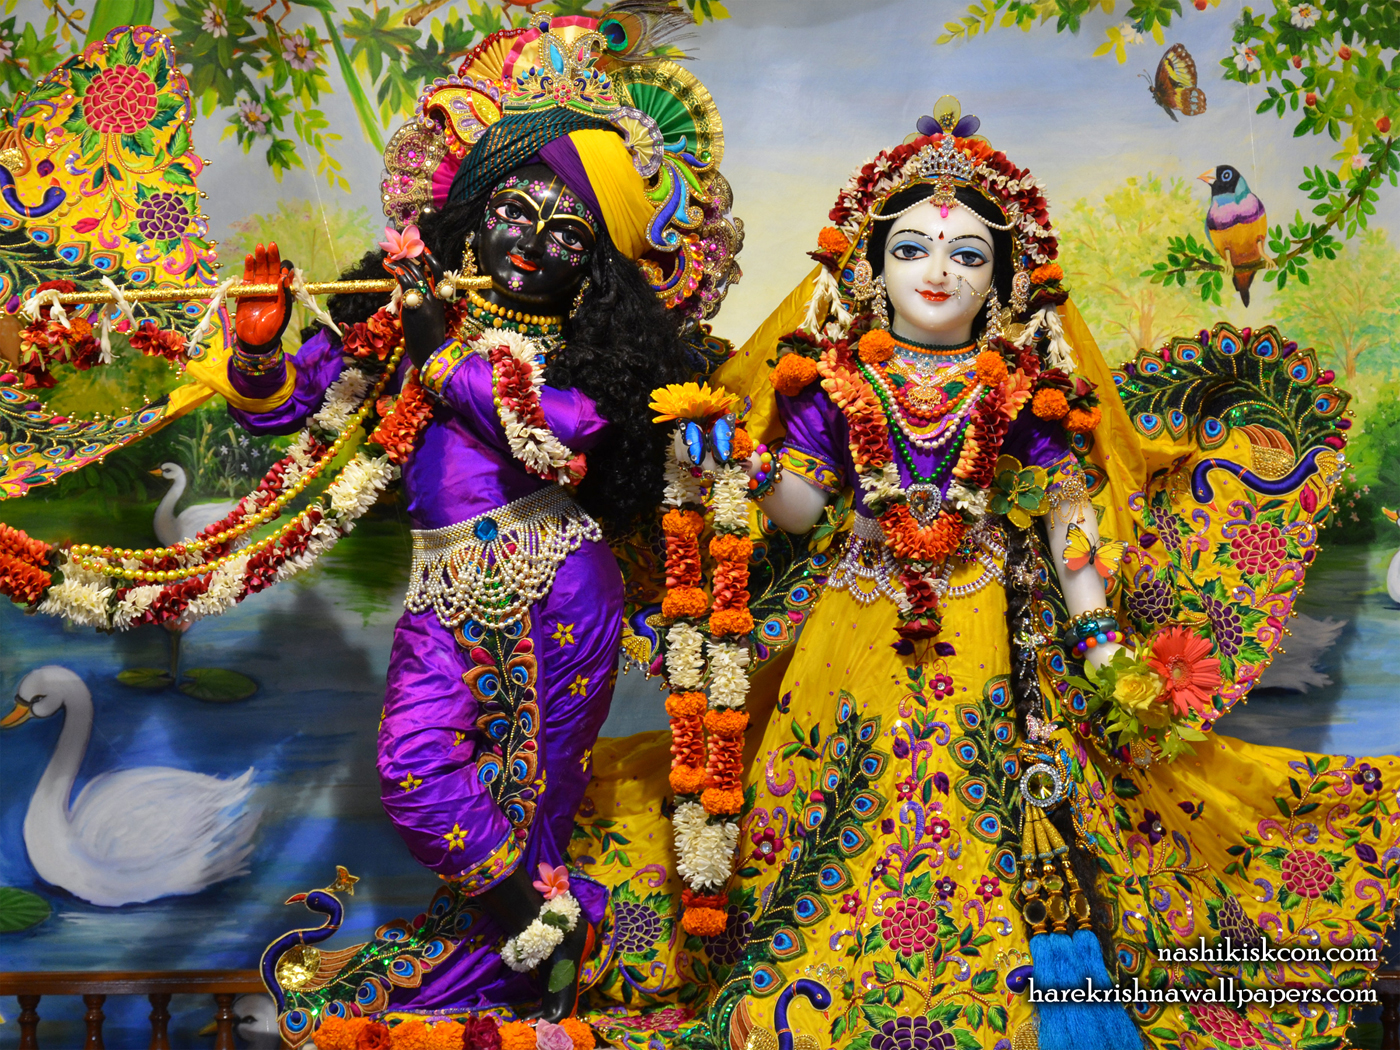 Sri Sri Radha Madan Gopal Wallpaper (009) Size 1400x1050 Download